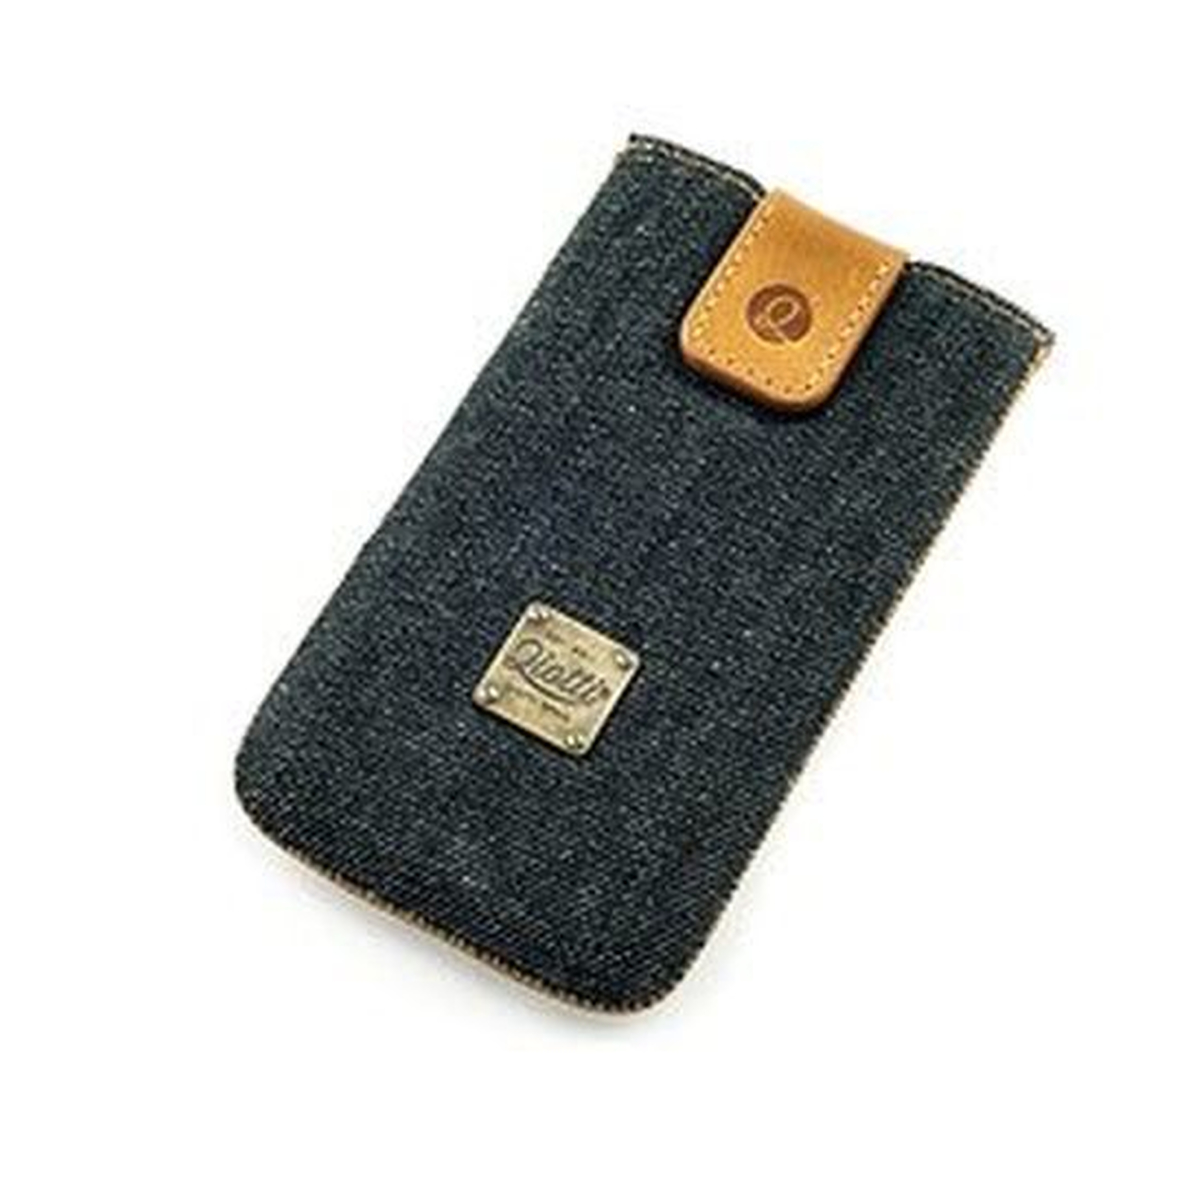 QIOTTI Raw Case für Apple iPhone 5/5S/5C Denim schwarz